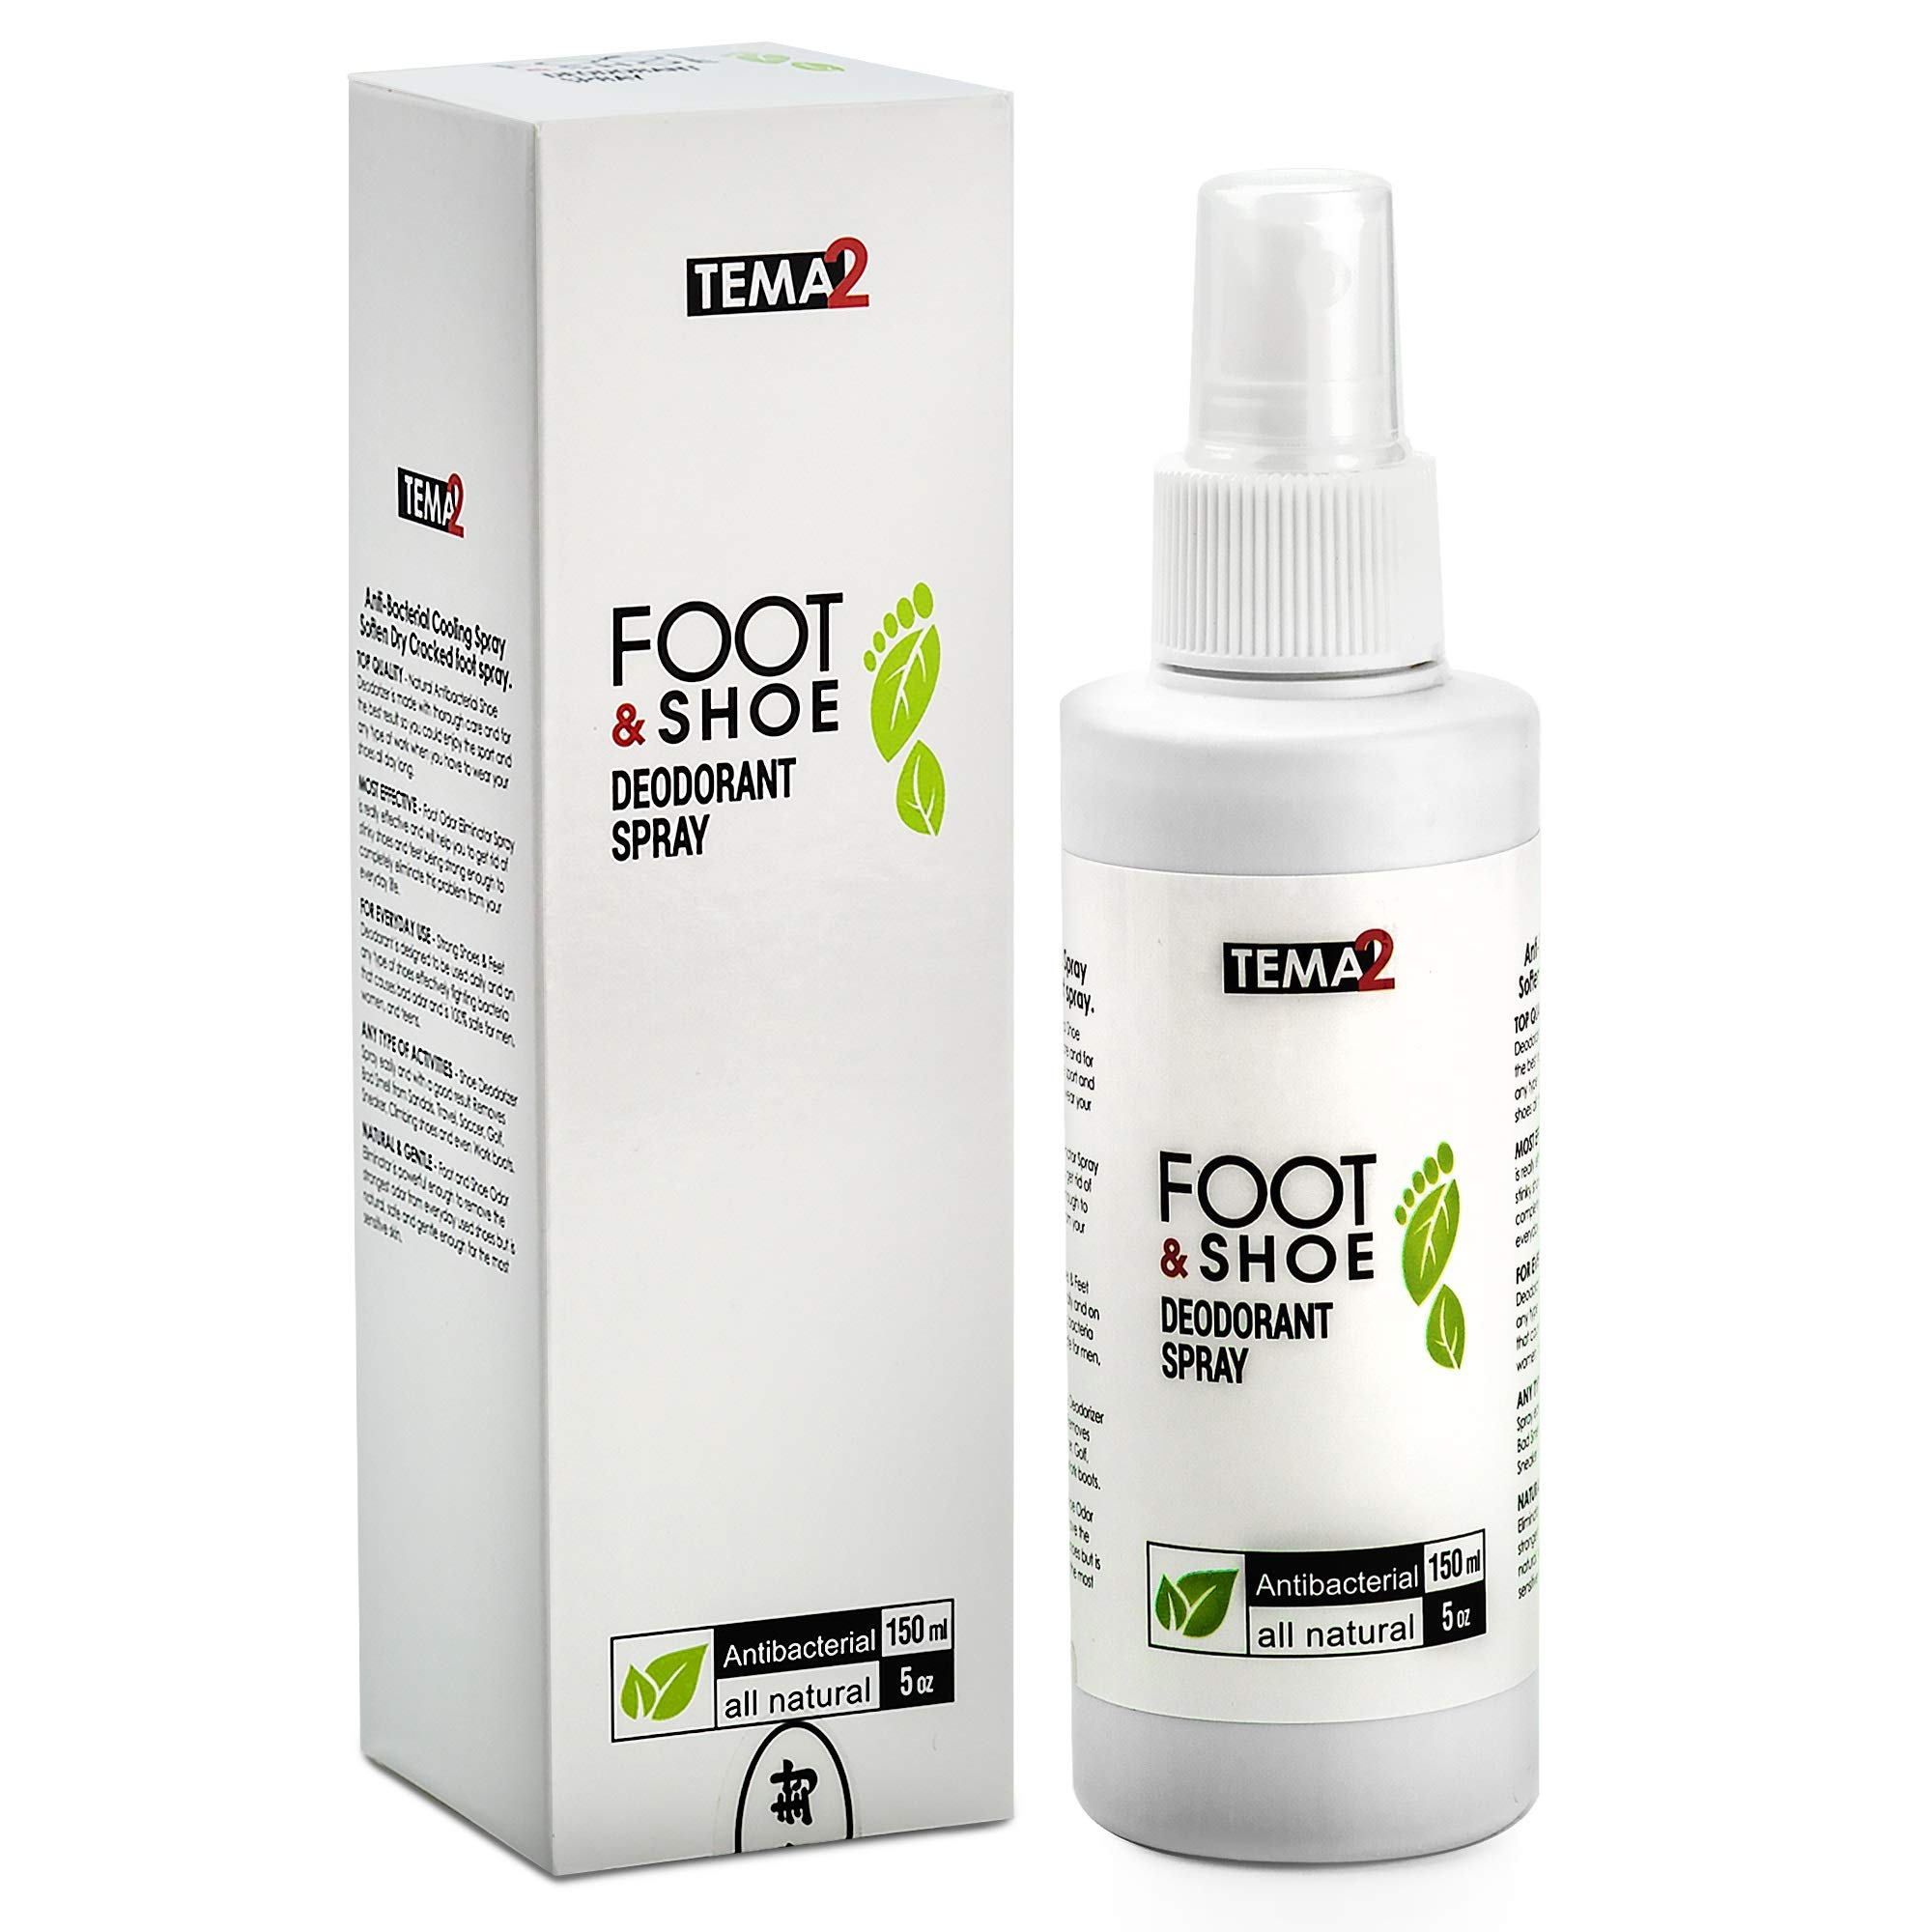 Shoe Deodorizer and Foot Odor Eliminator Spray - Strong Feet & Shoe Deodorant - Removes Bad Smell from Sandals Tennis Athlete Dance Sneaker Climbing Work Stinky Shoes by TEMA2